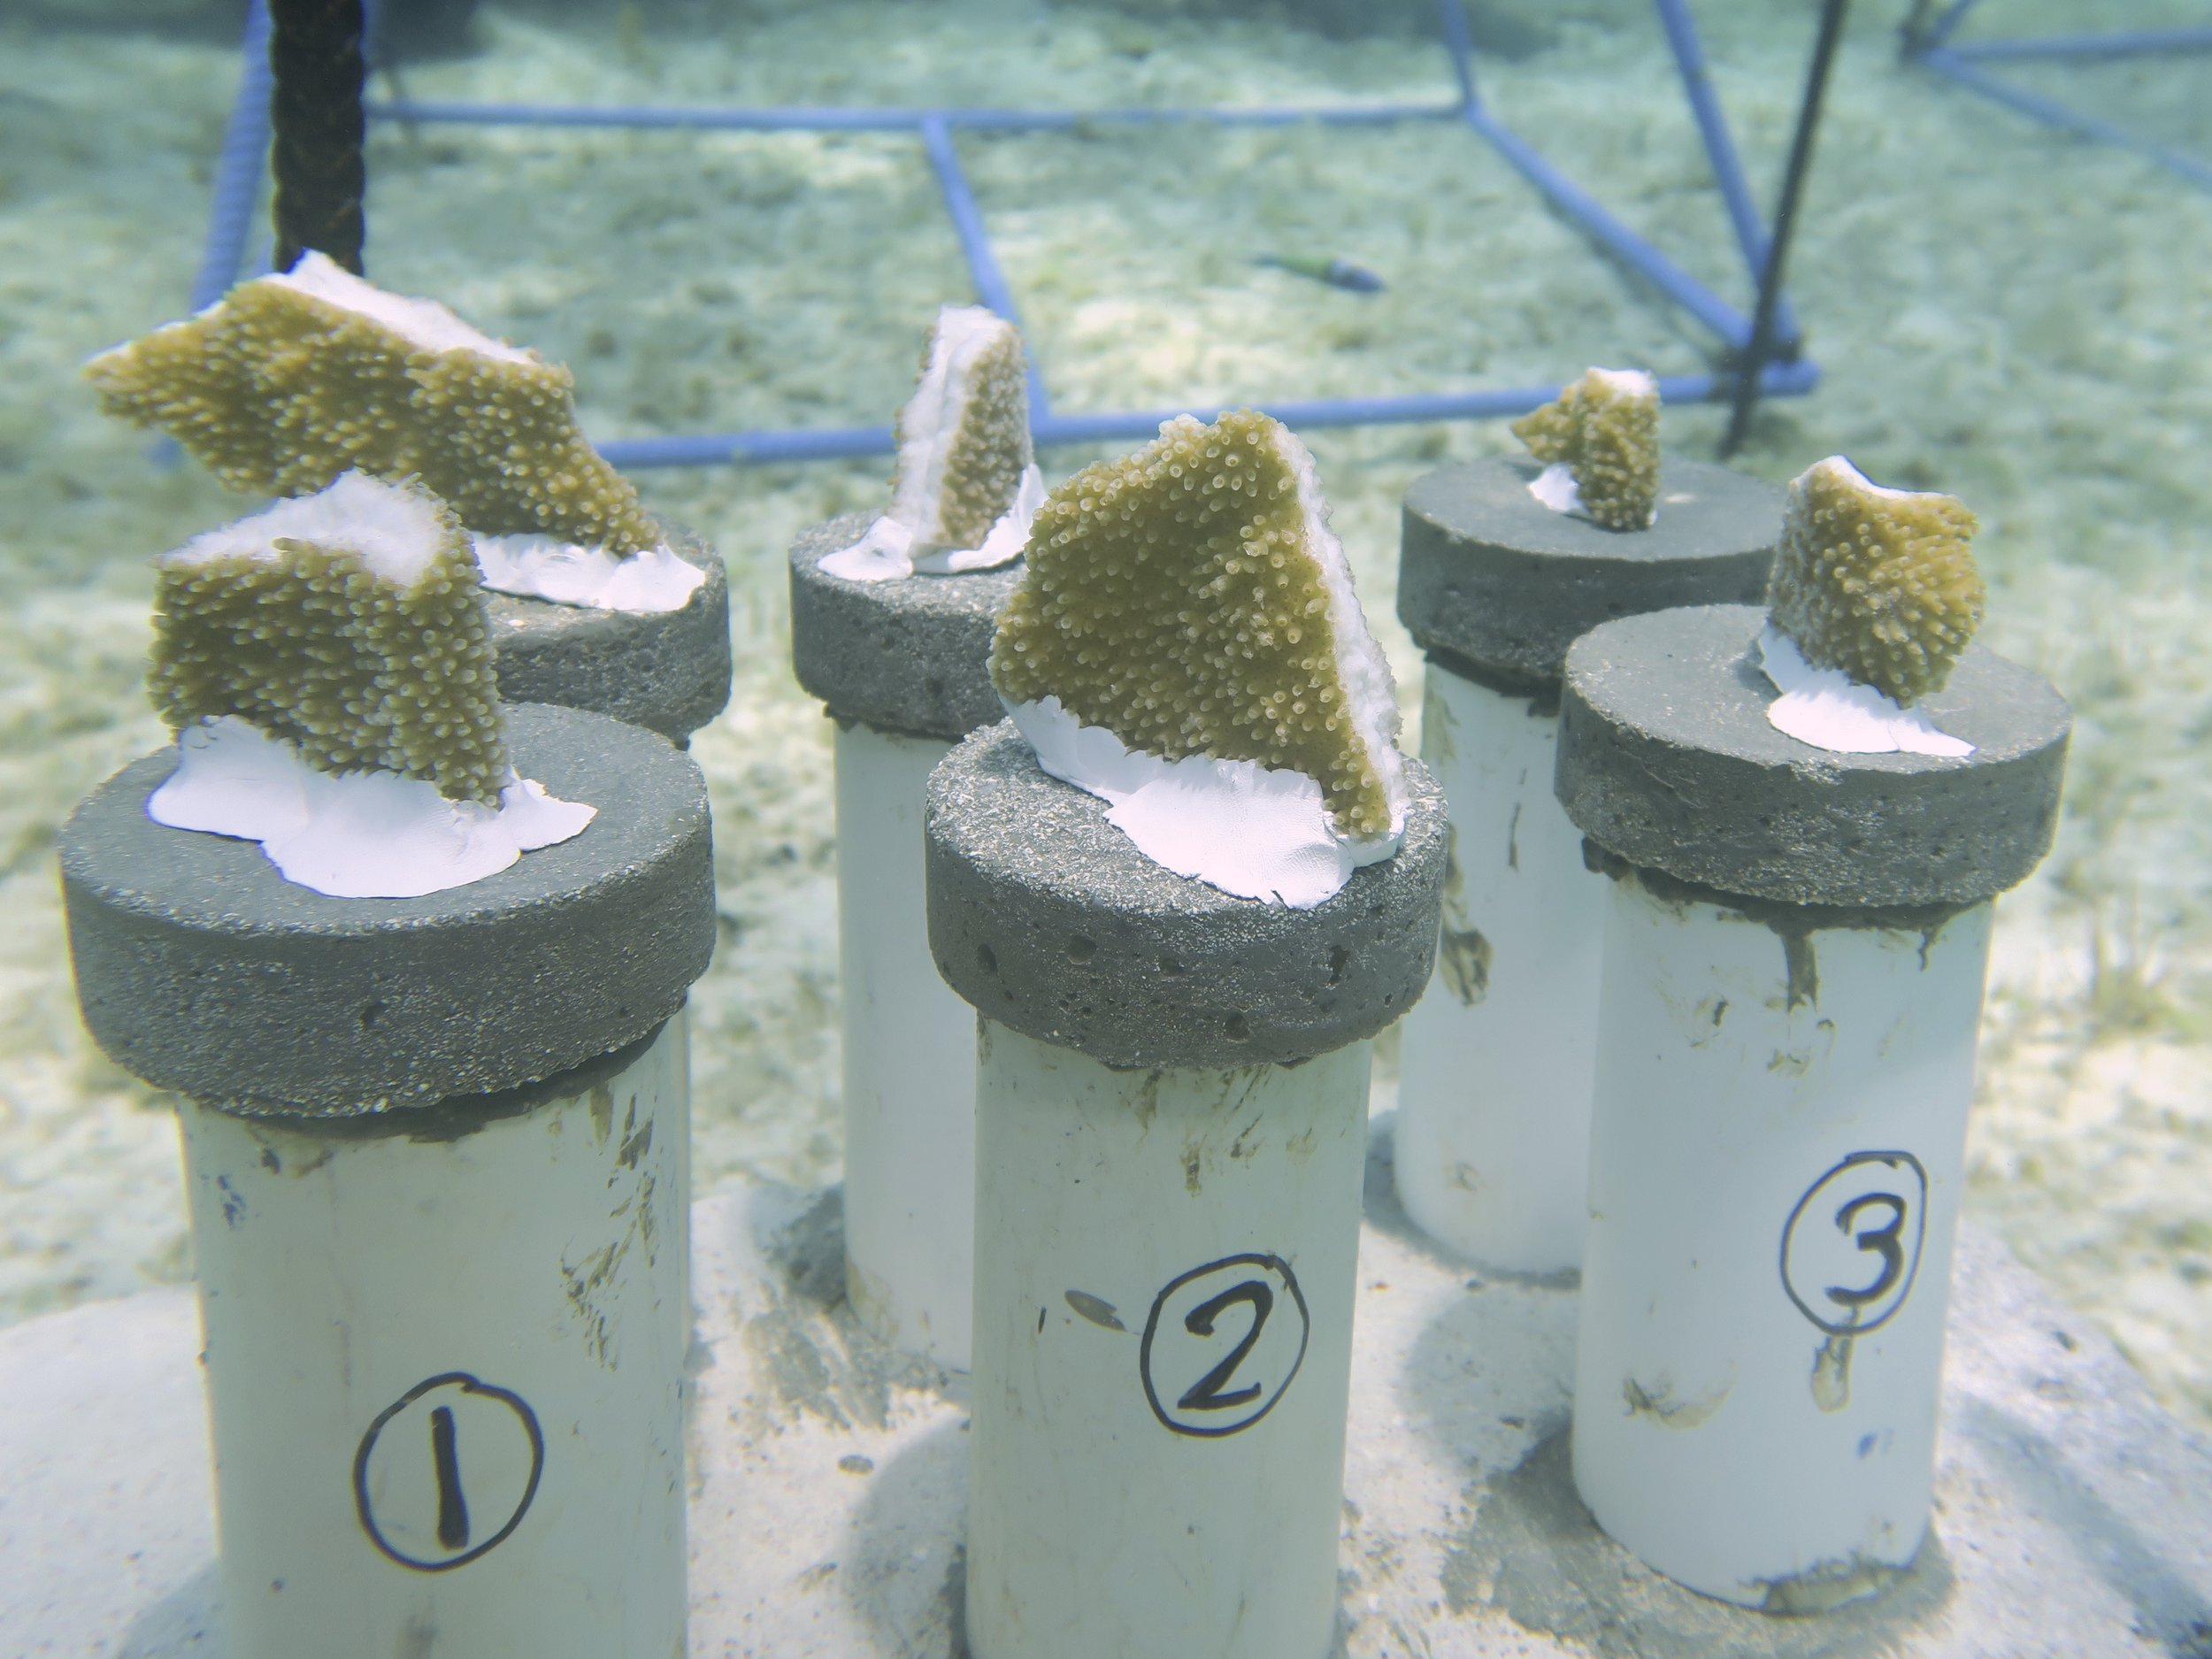 Photo 3: Elkhorn coral fragments attached to cement pucks using epoxy.